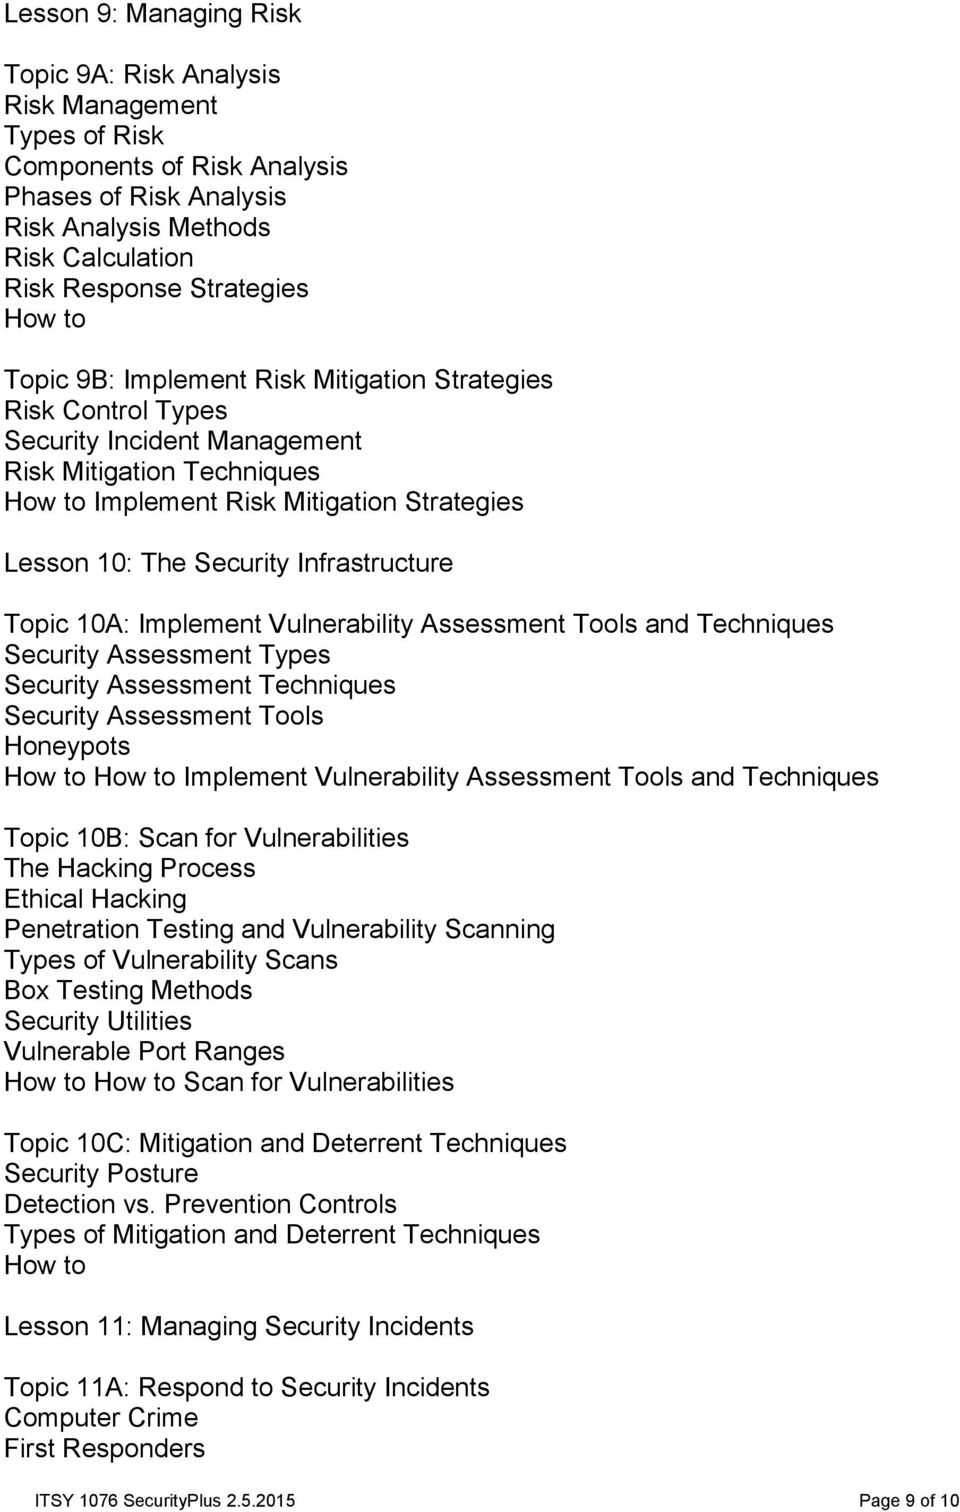 10A: Implement Vulnerability Assessment Tools and Techniques Security Assessment Types Security Assessment Techniques Security Assessment Tools Honeypots Implement Vulnerability Assessment Tools and